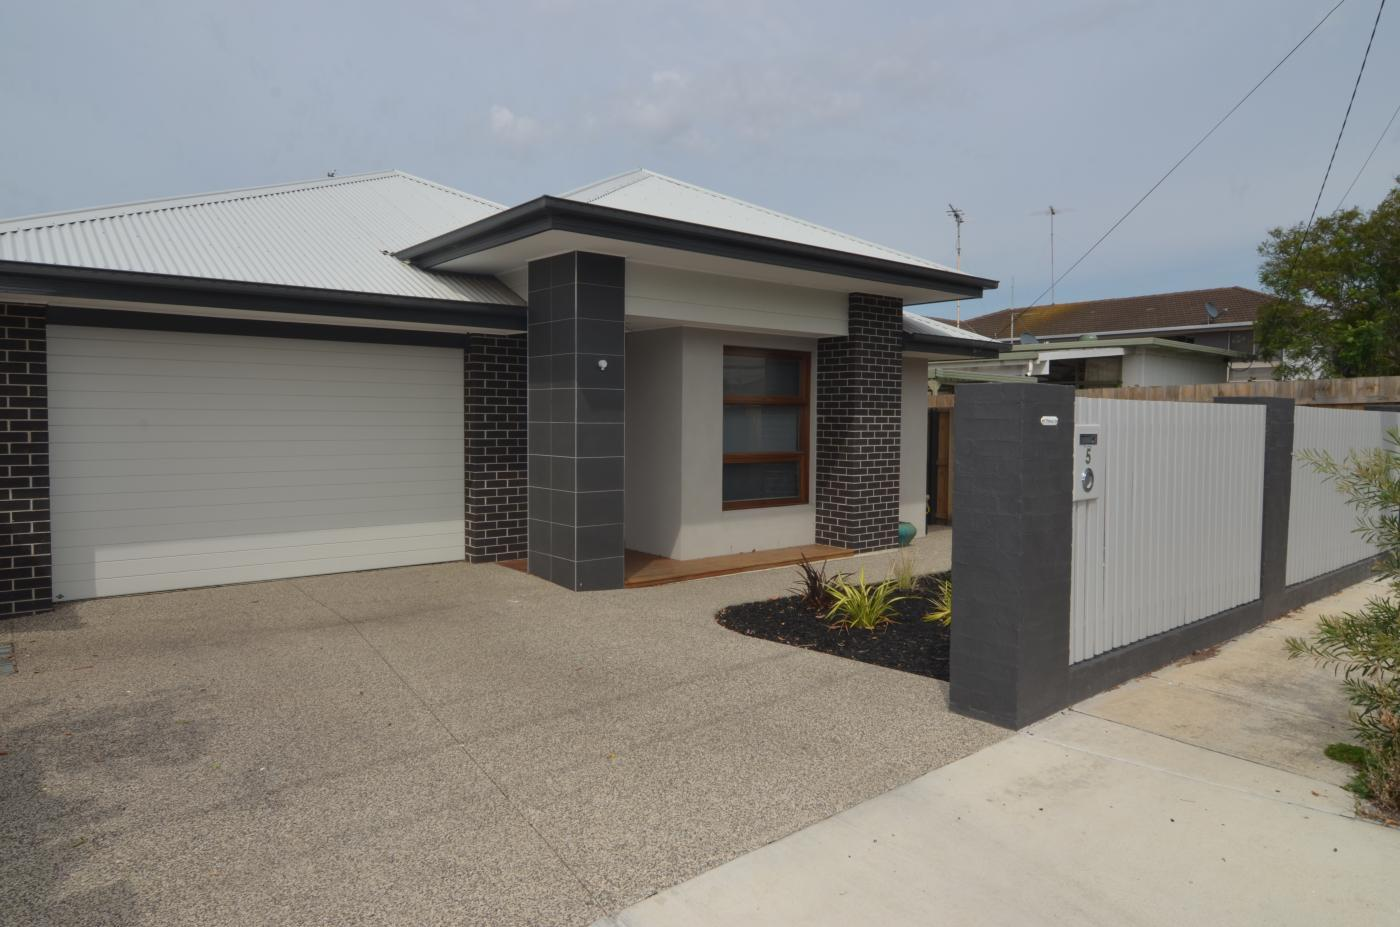 3/7 French Street, Geelong West, VIC 3218 Sale & Rental History ...